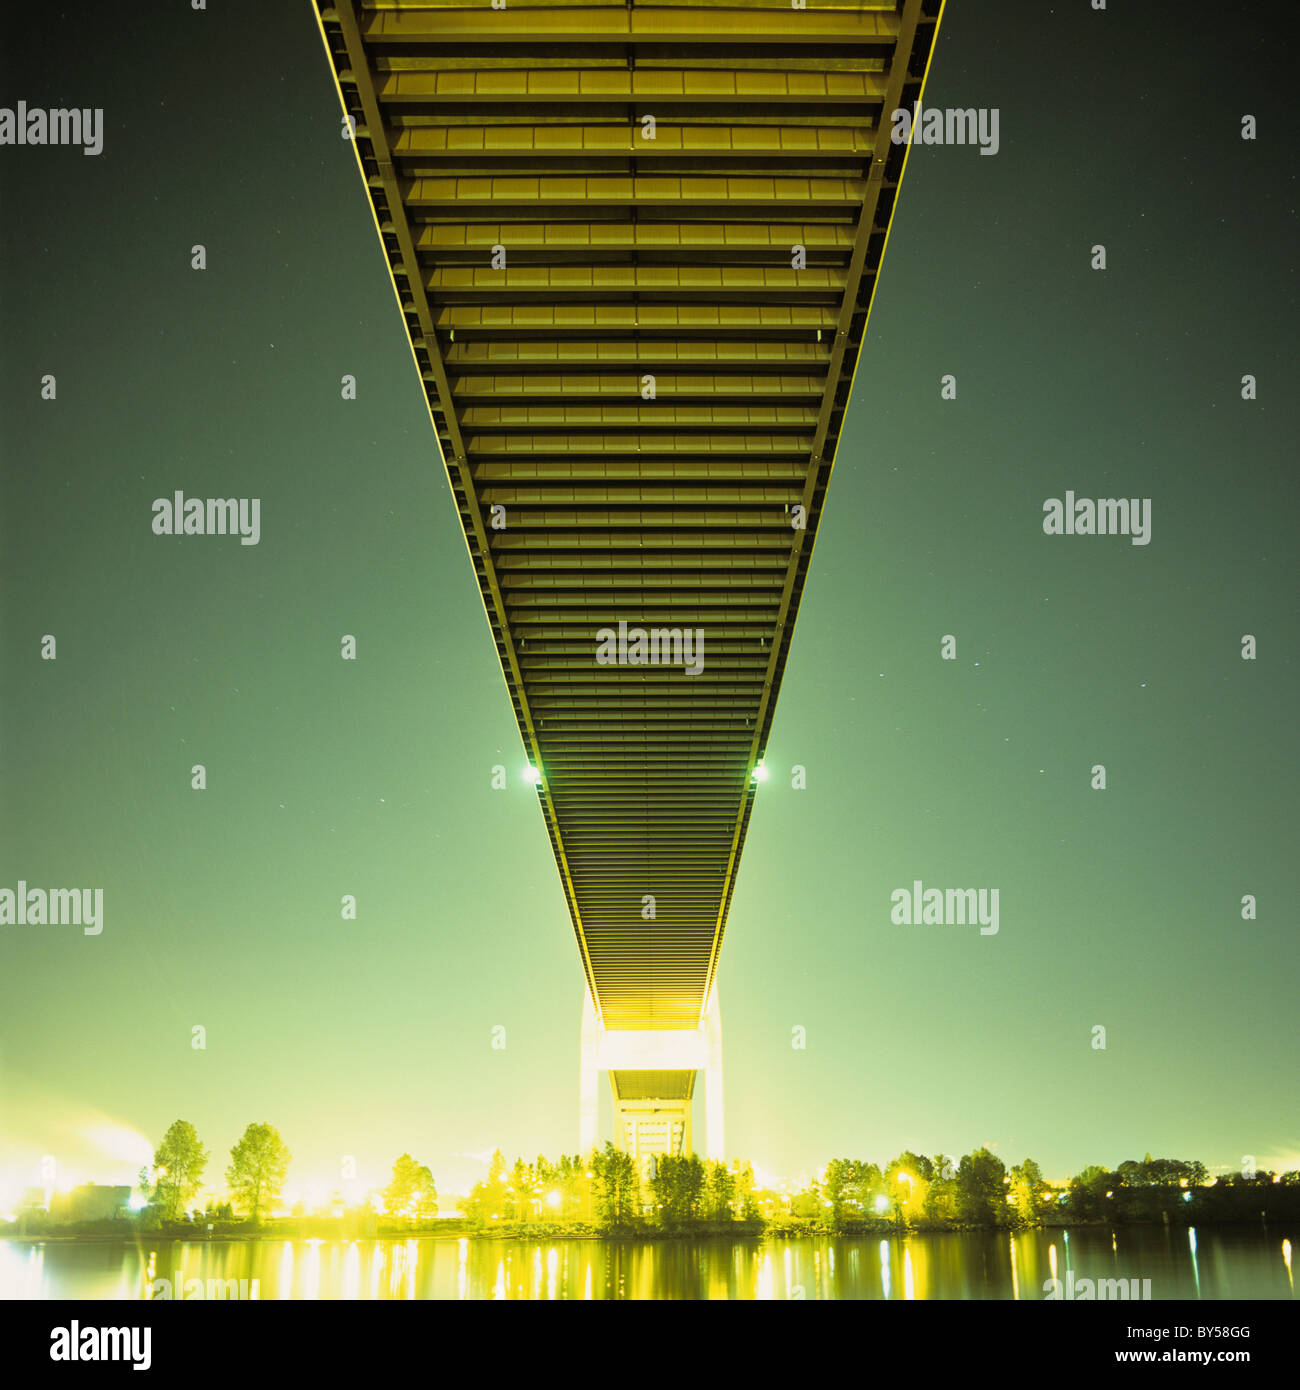 Un pont la nuit Photo Stock